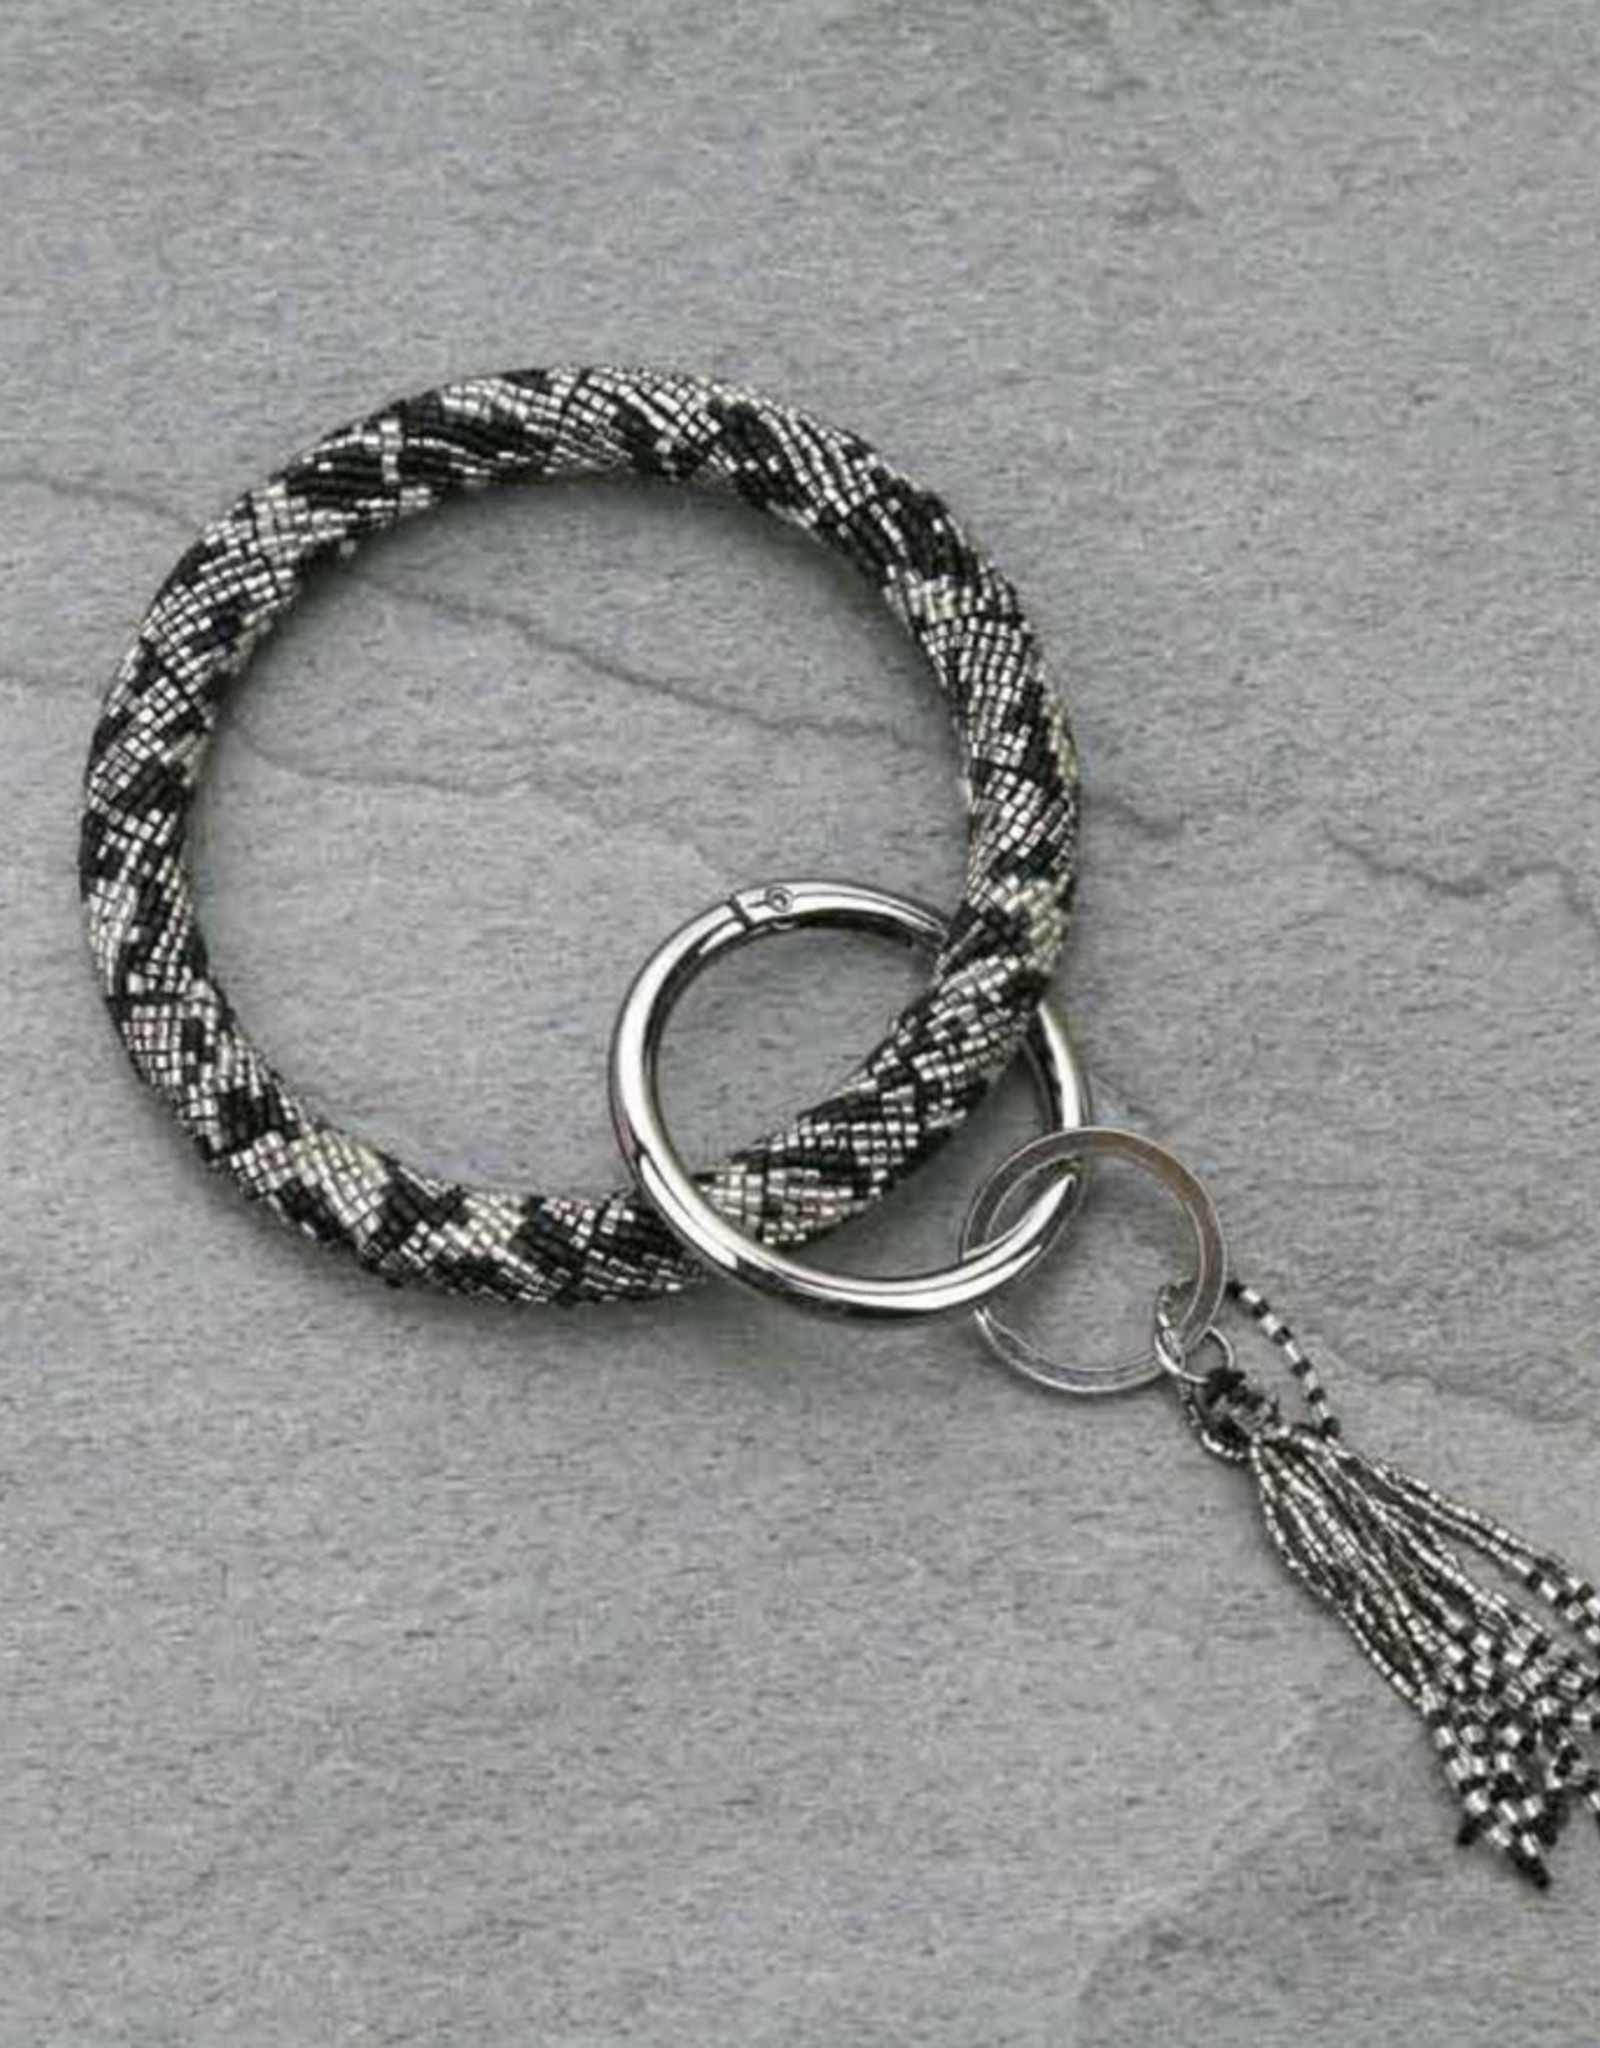 BRACELET BLACK/SILVER SEAD BEAD KEY RING